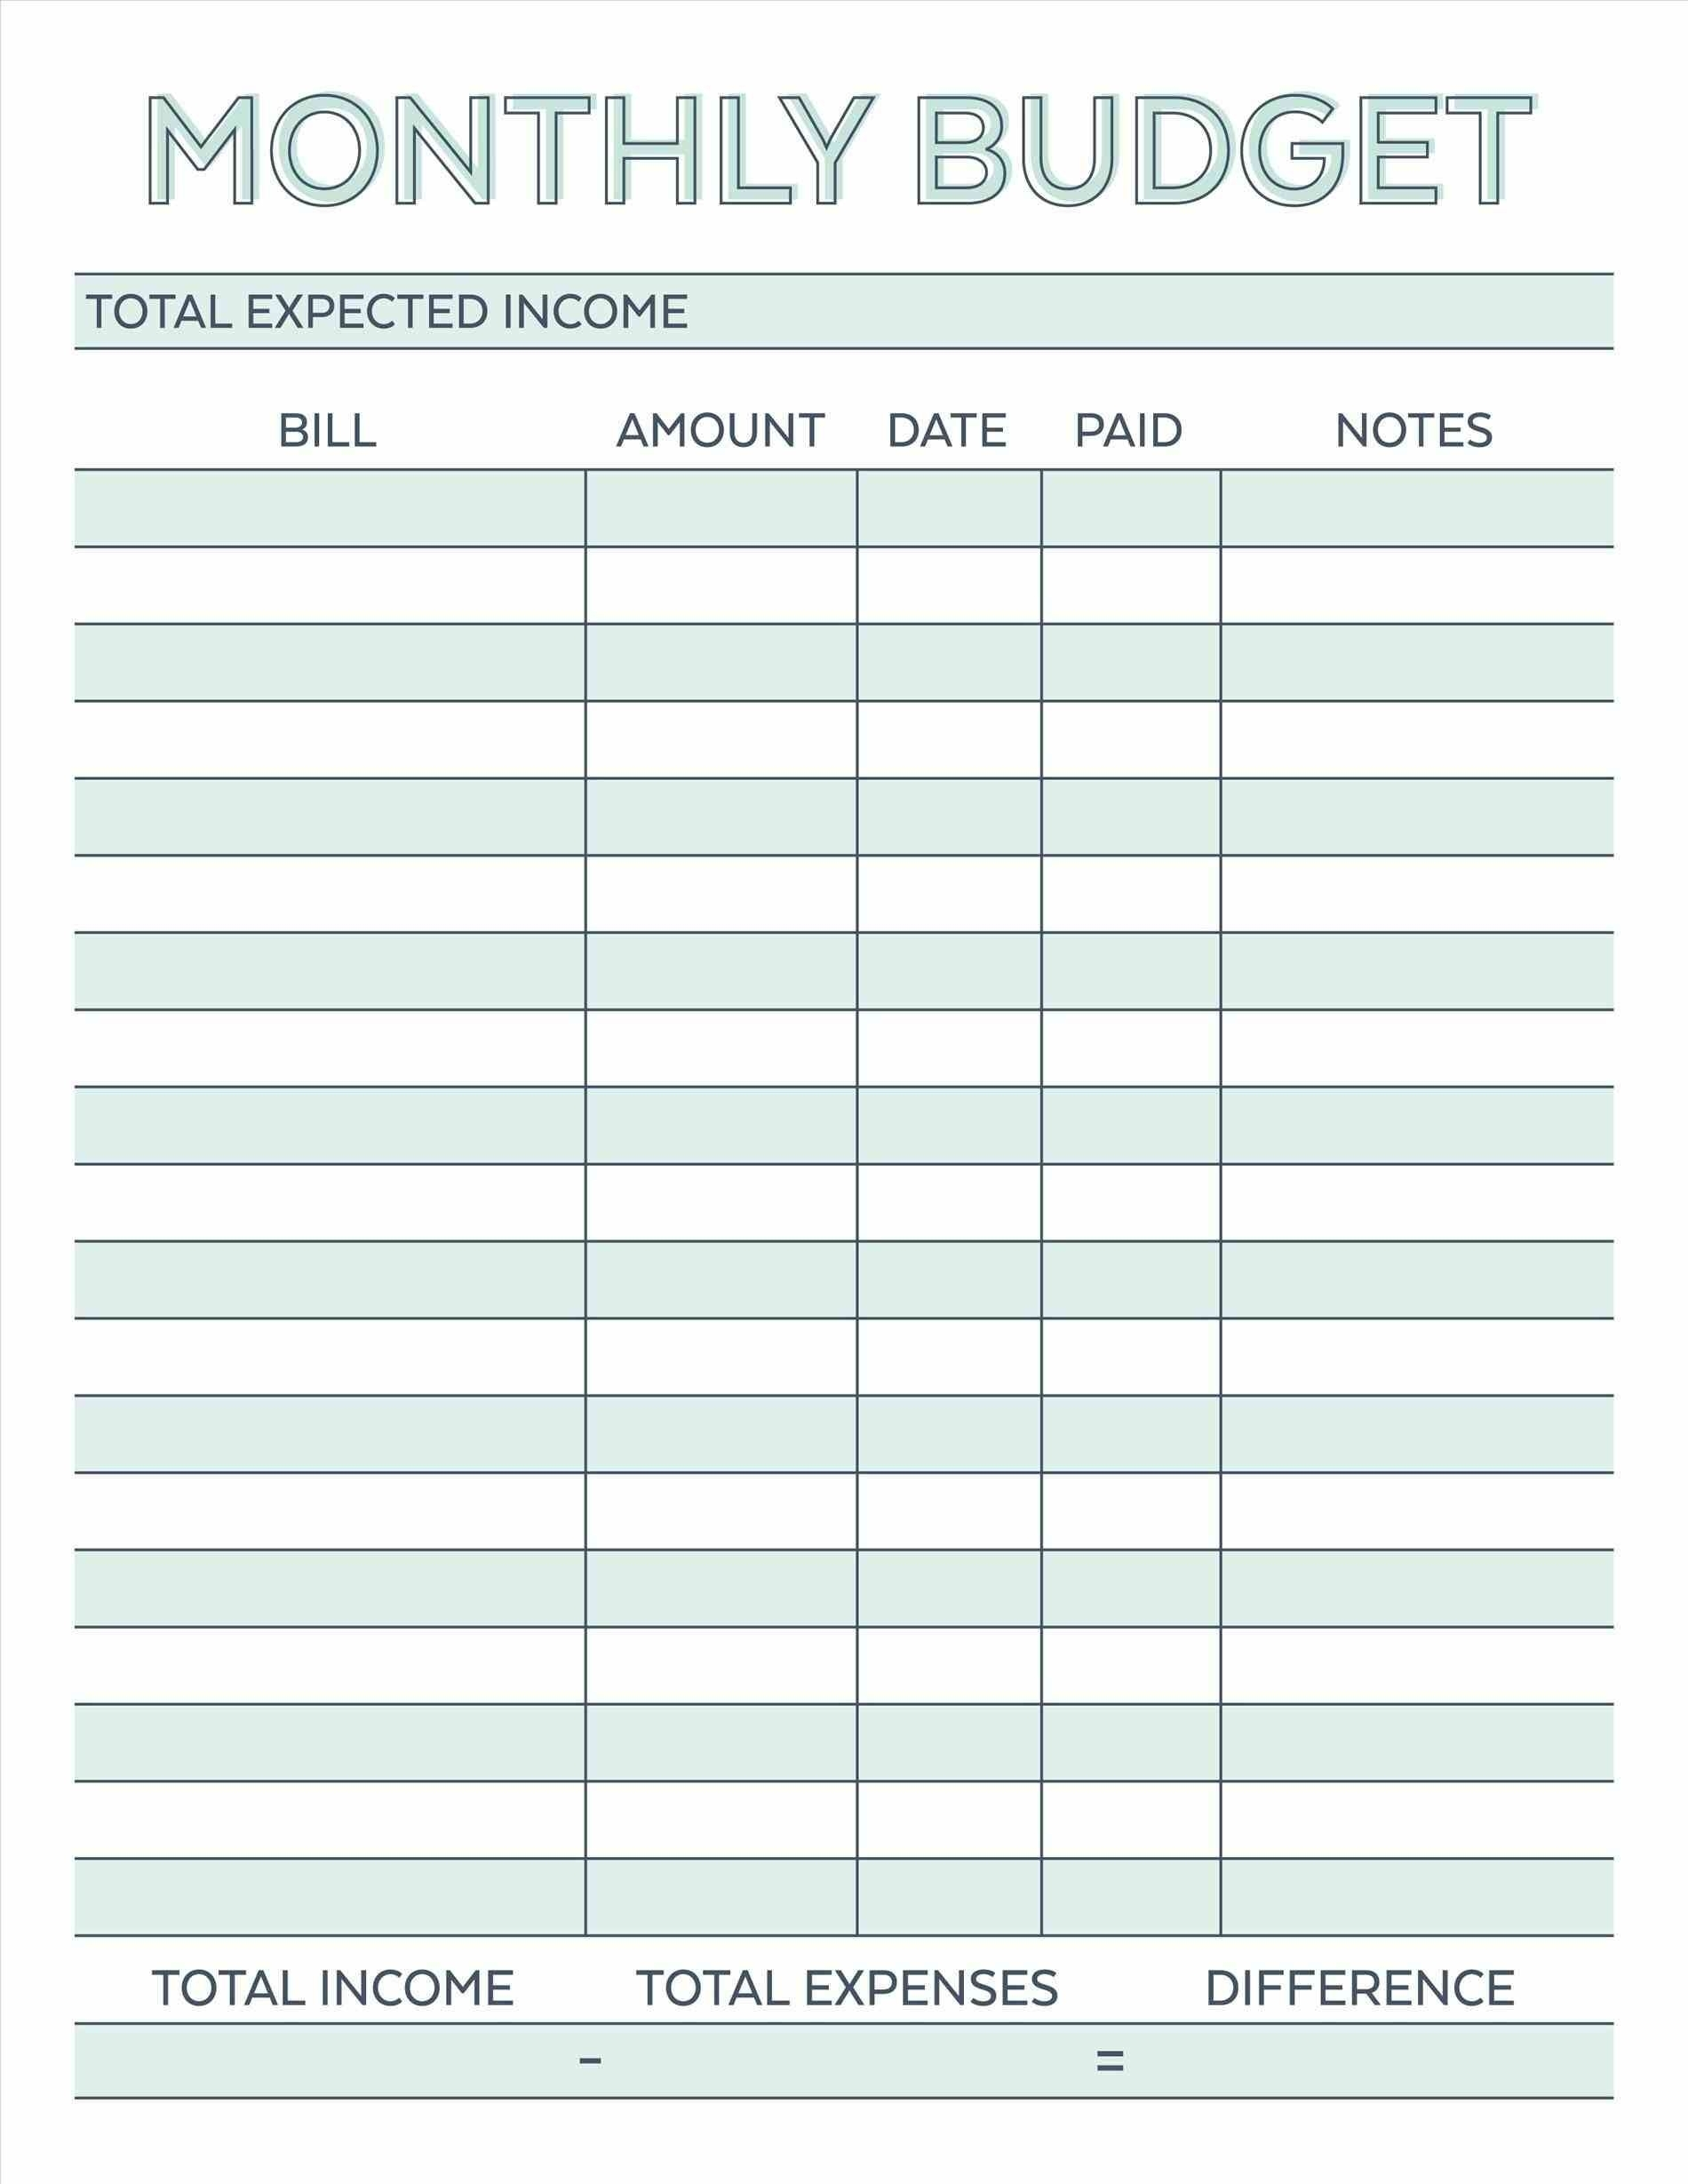 Budget Planner Planner Worksheet Monthly Bills Template Free regarding Free Printable Monthly Bill Payment